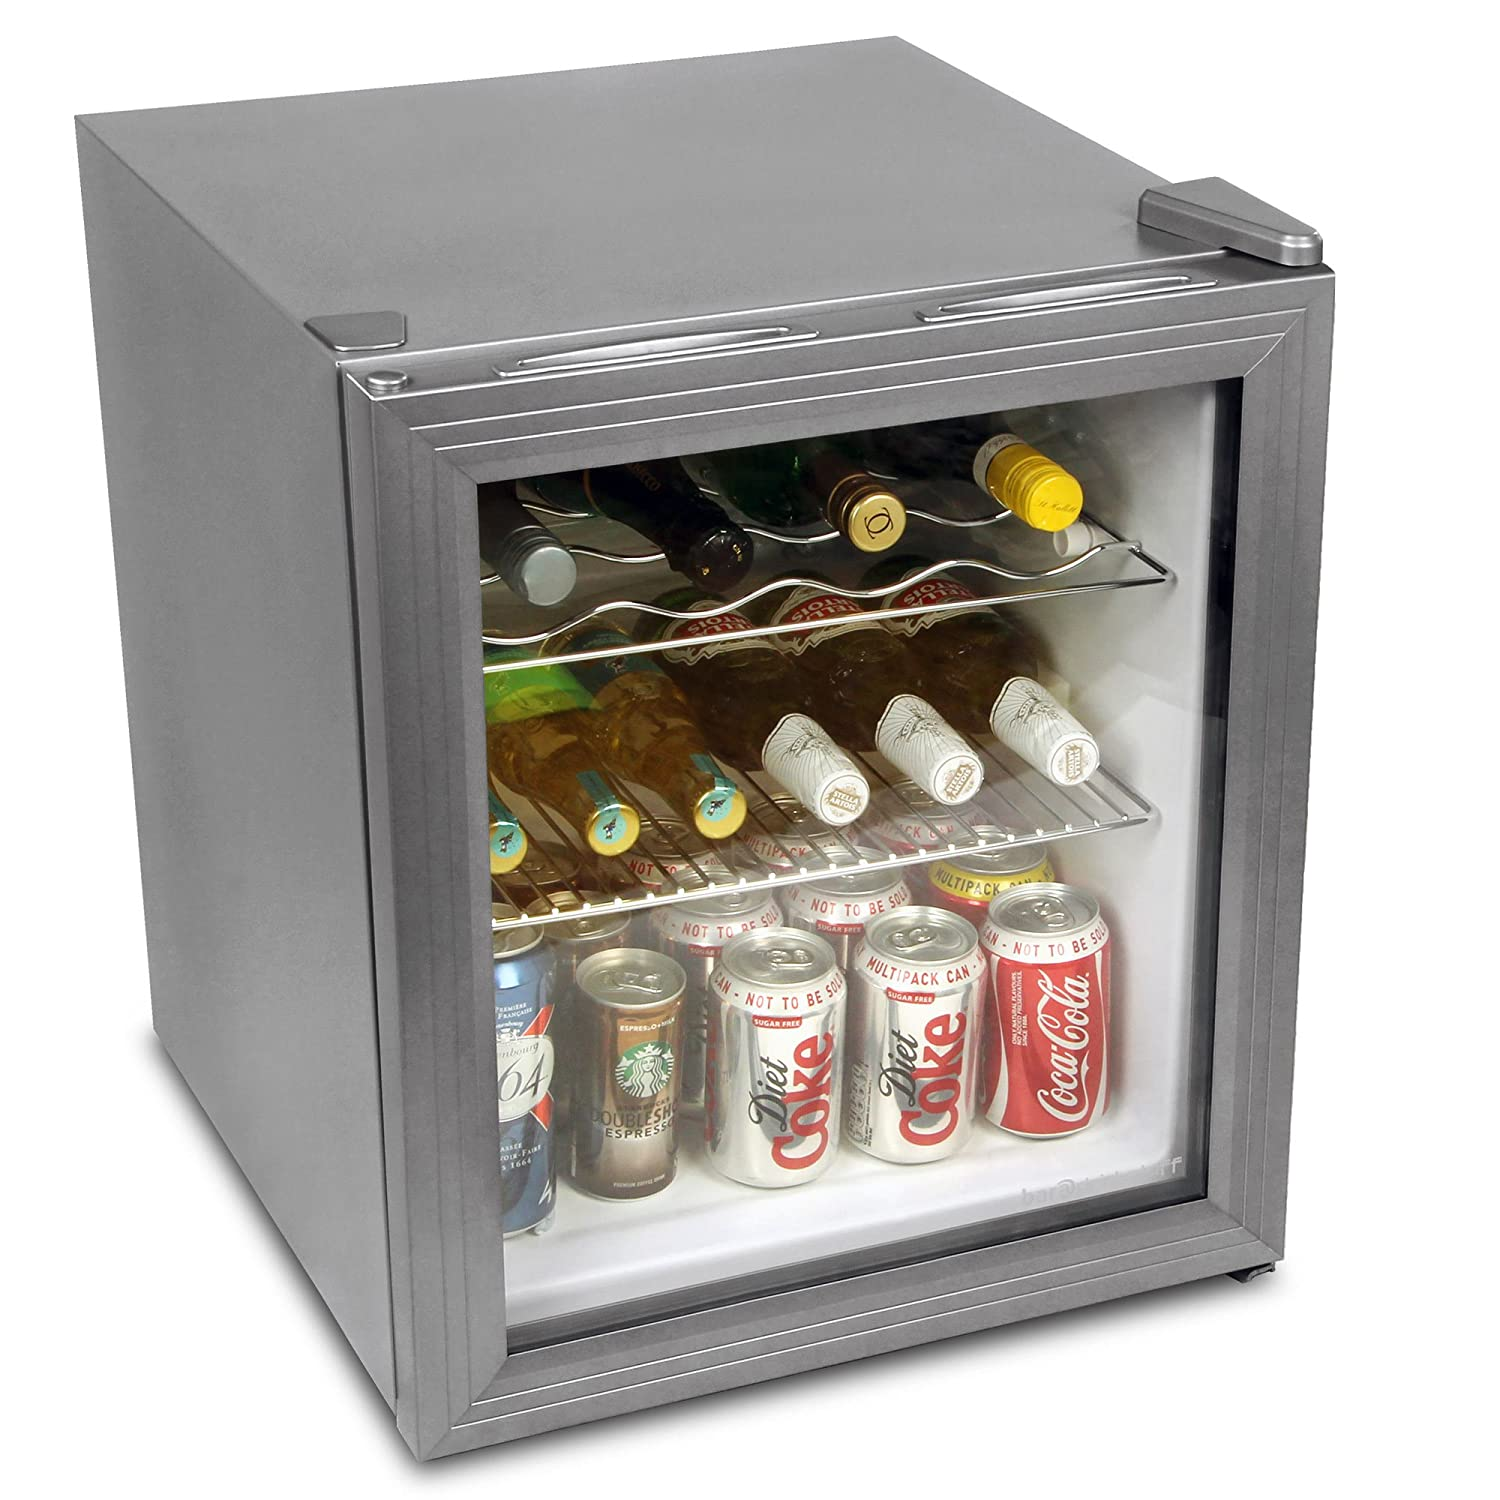 bar@drinkstuff Frostbite Wine Fridge 49ltr Silver - 49ltr Mini Fridge Wine Chiller and Mini Fridge